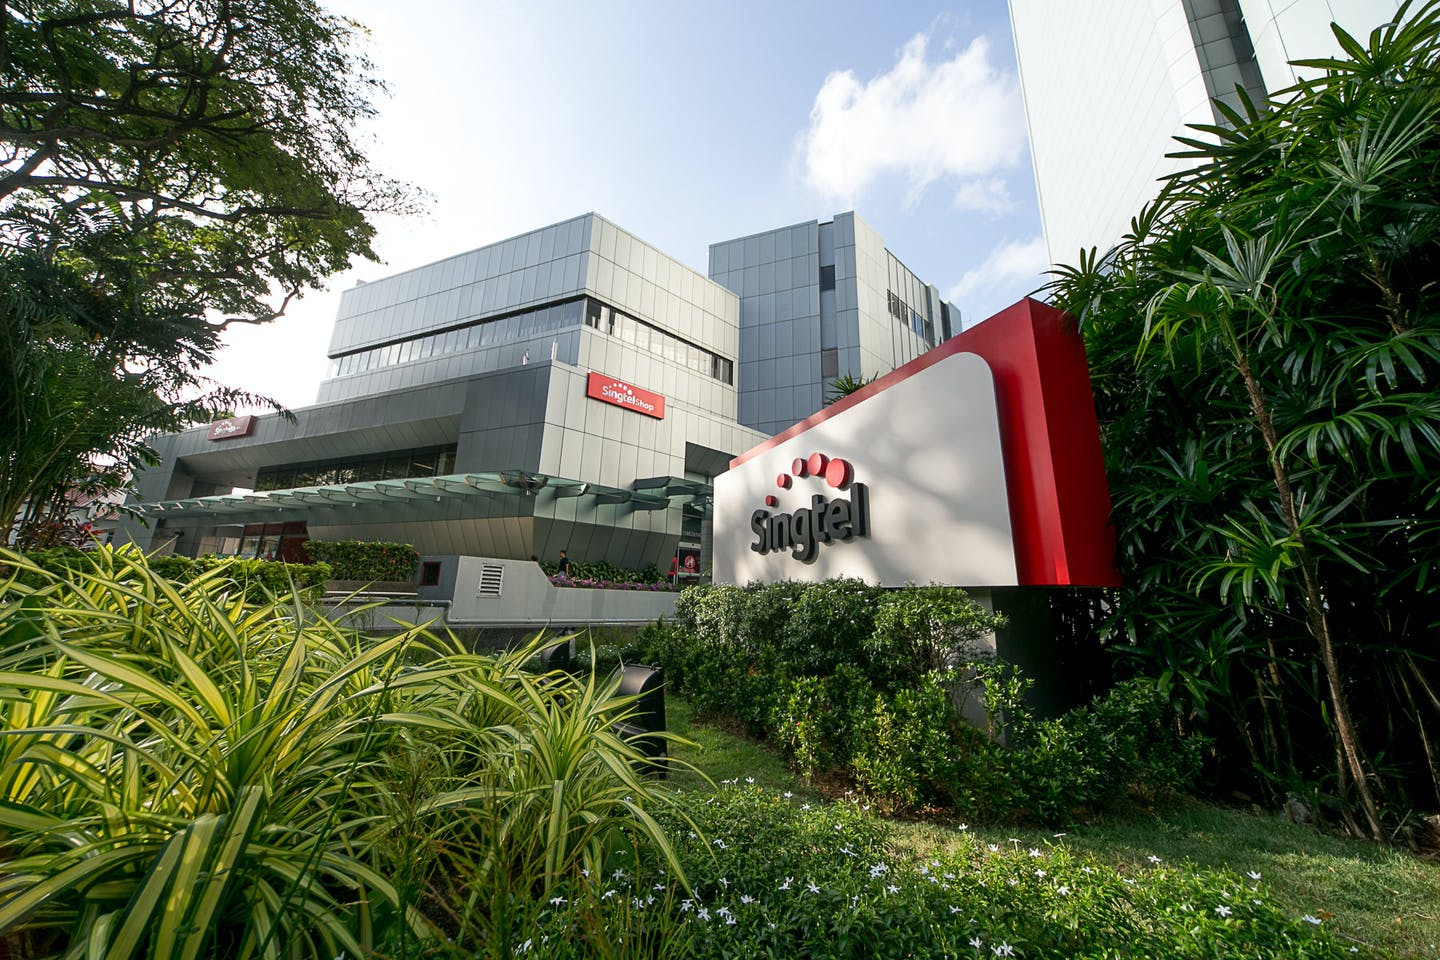 Singtel Group first in Asia ex-Japan to have carbon reduction targets approved by Science Based Targets initiative